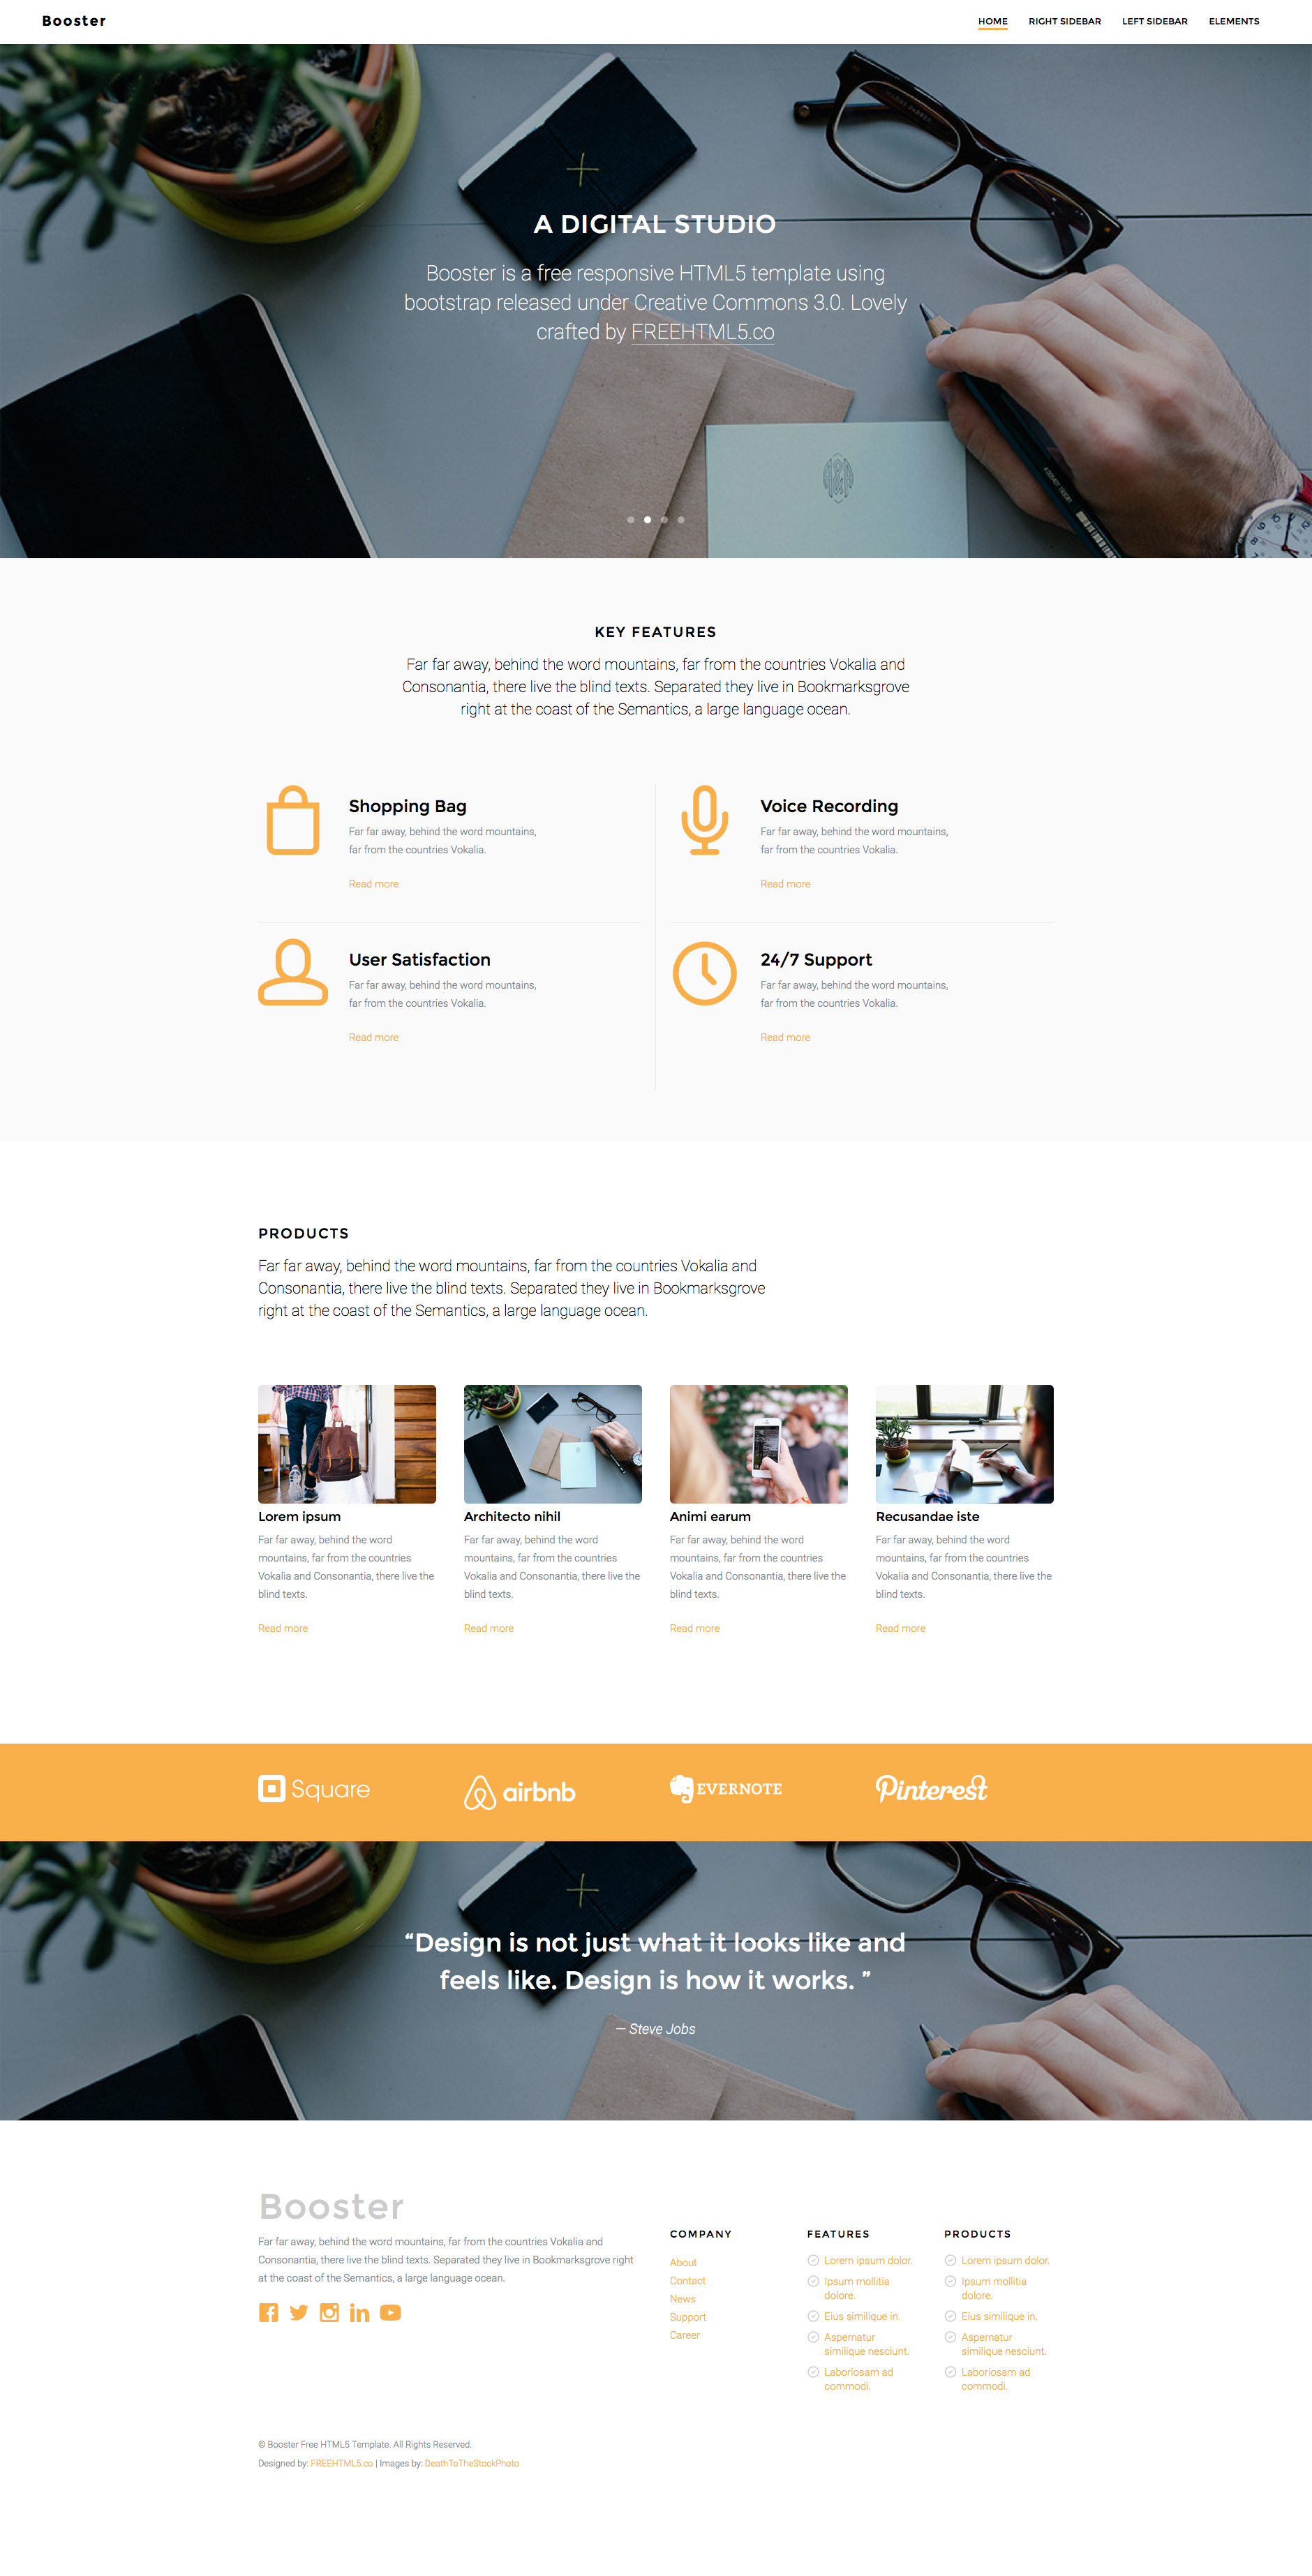 Booster free responsive html5 bootstrap business template booster free html5 template flashek Image collections